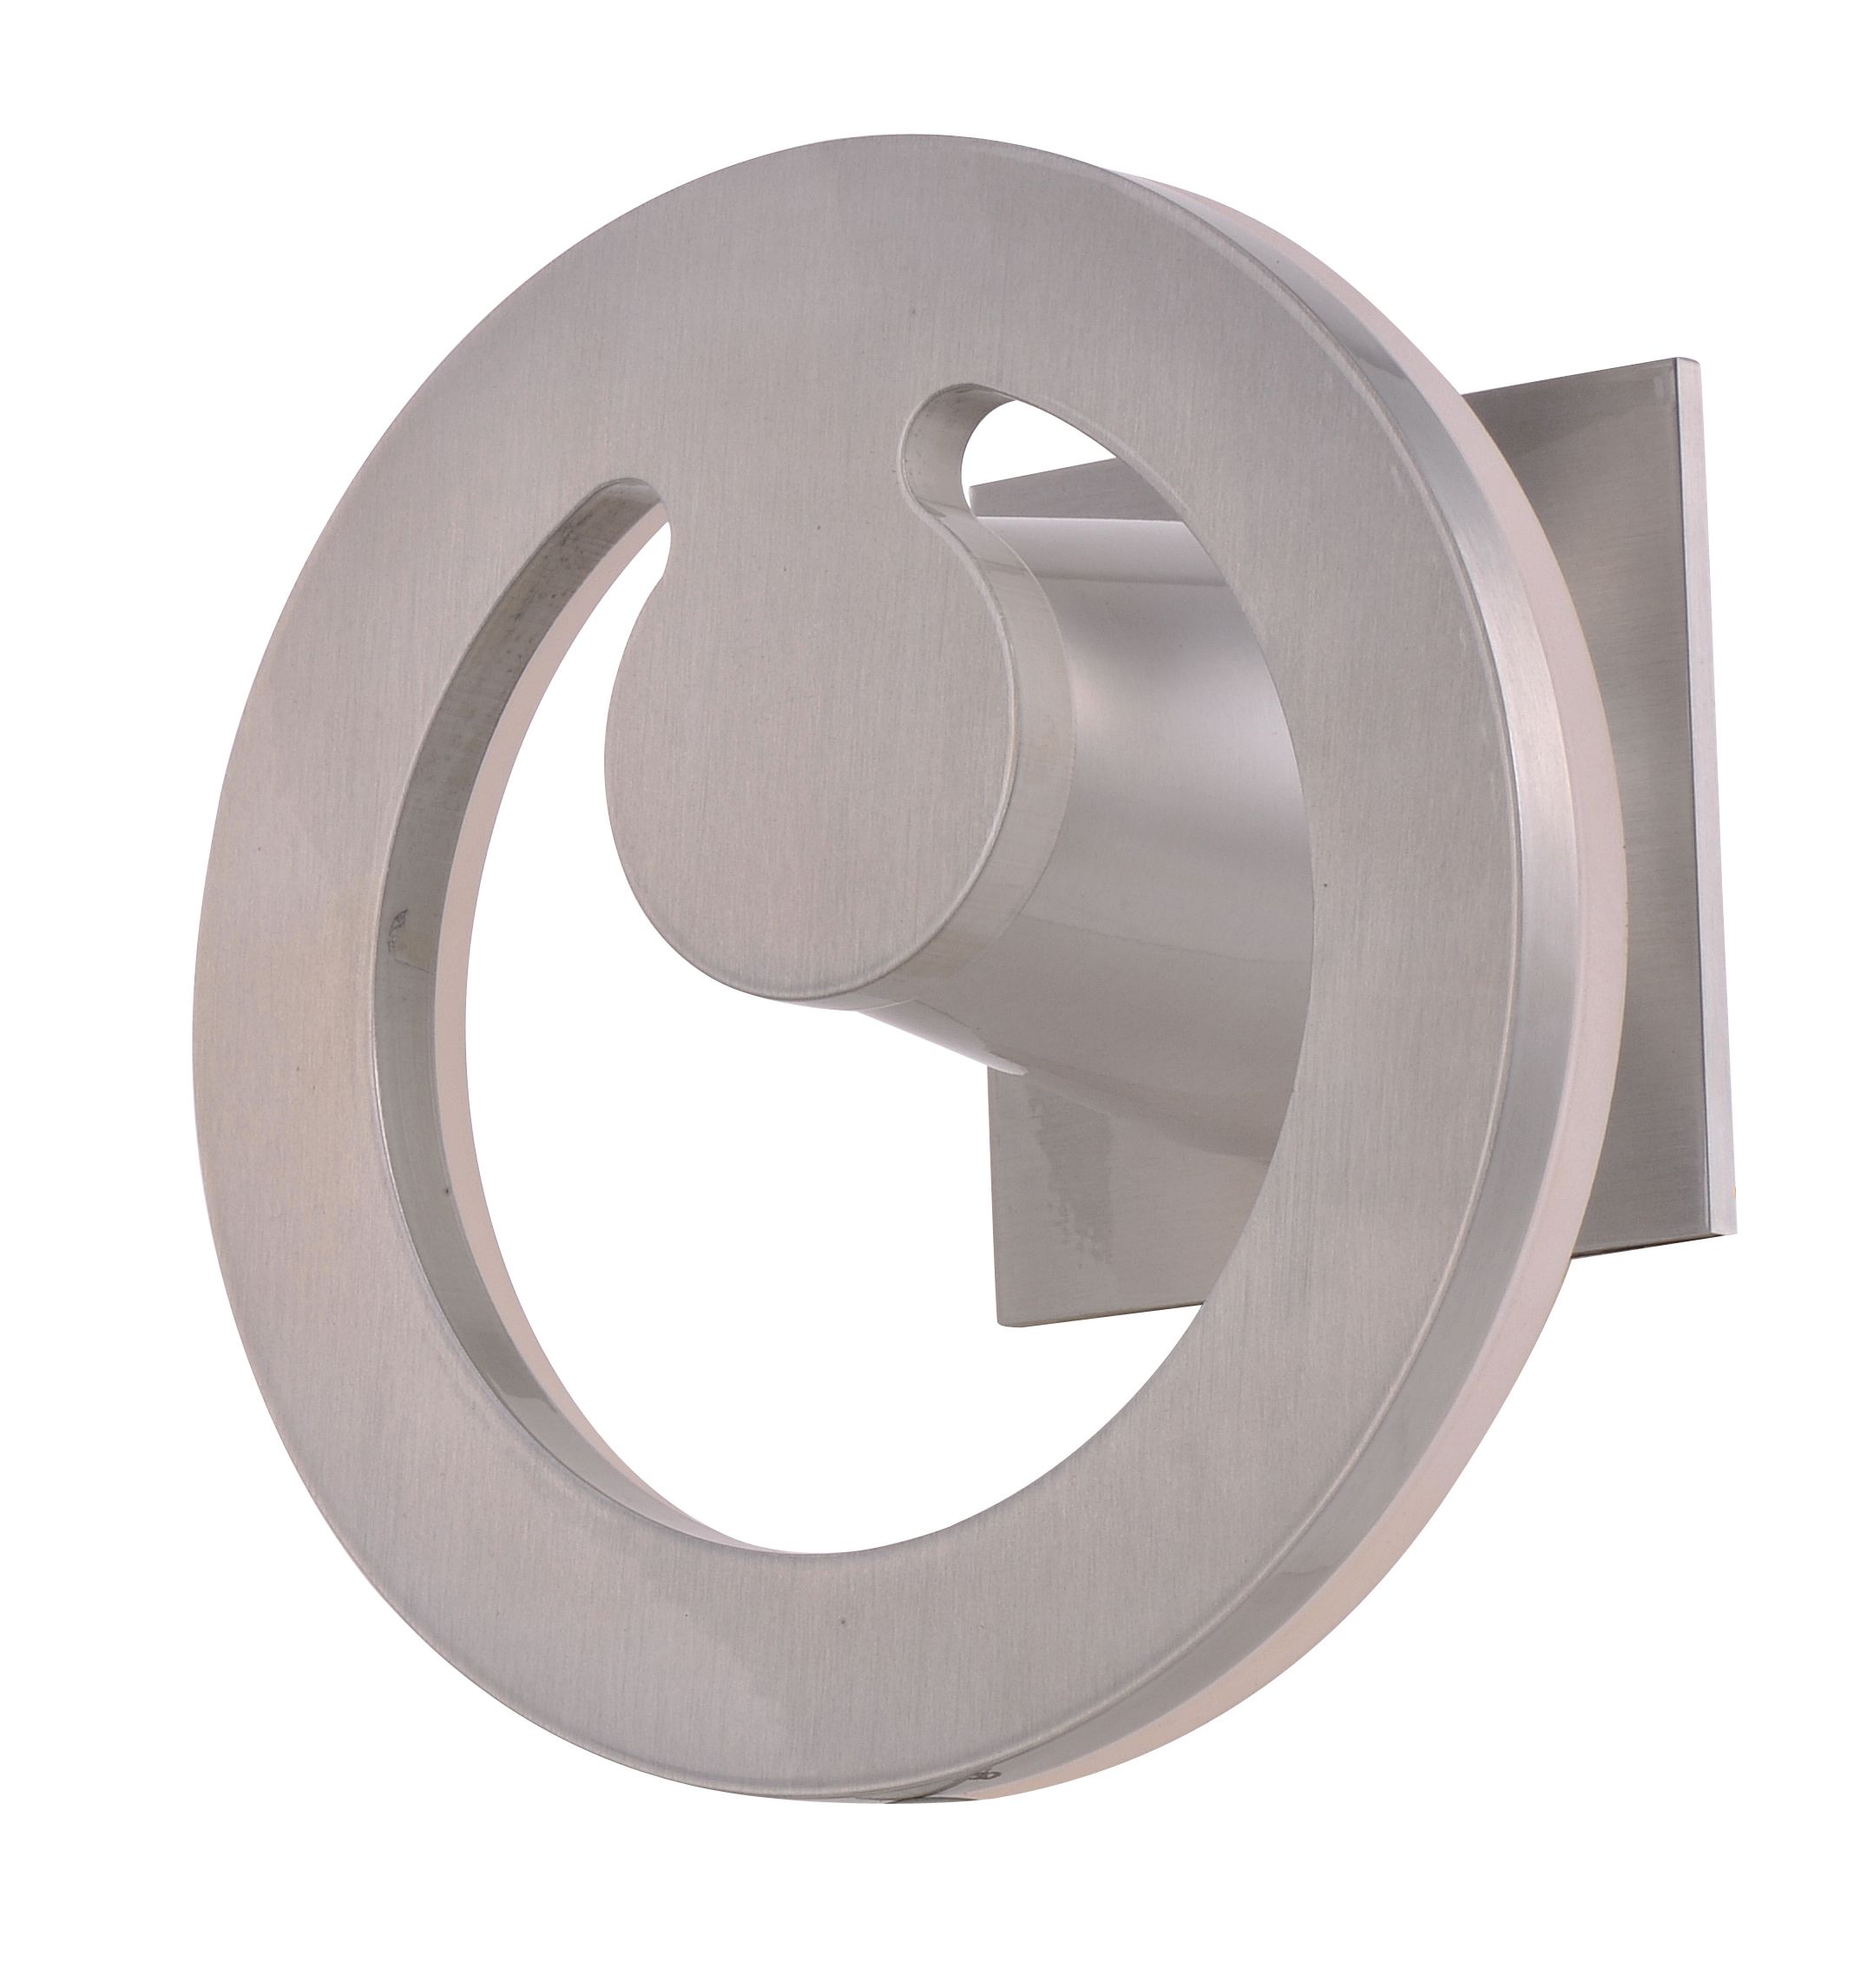 Alumilux LED Outdoor Wall Sconce | Wall | ET2 Online on Wall Sconce Replacement Parts id=63905